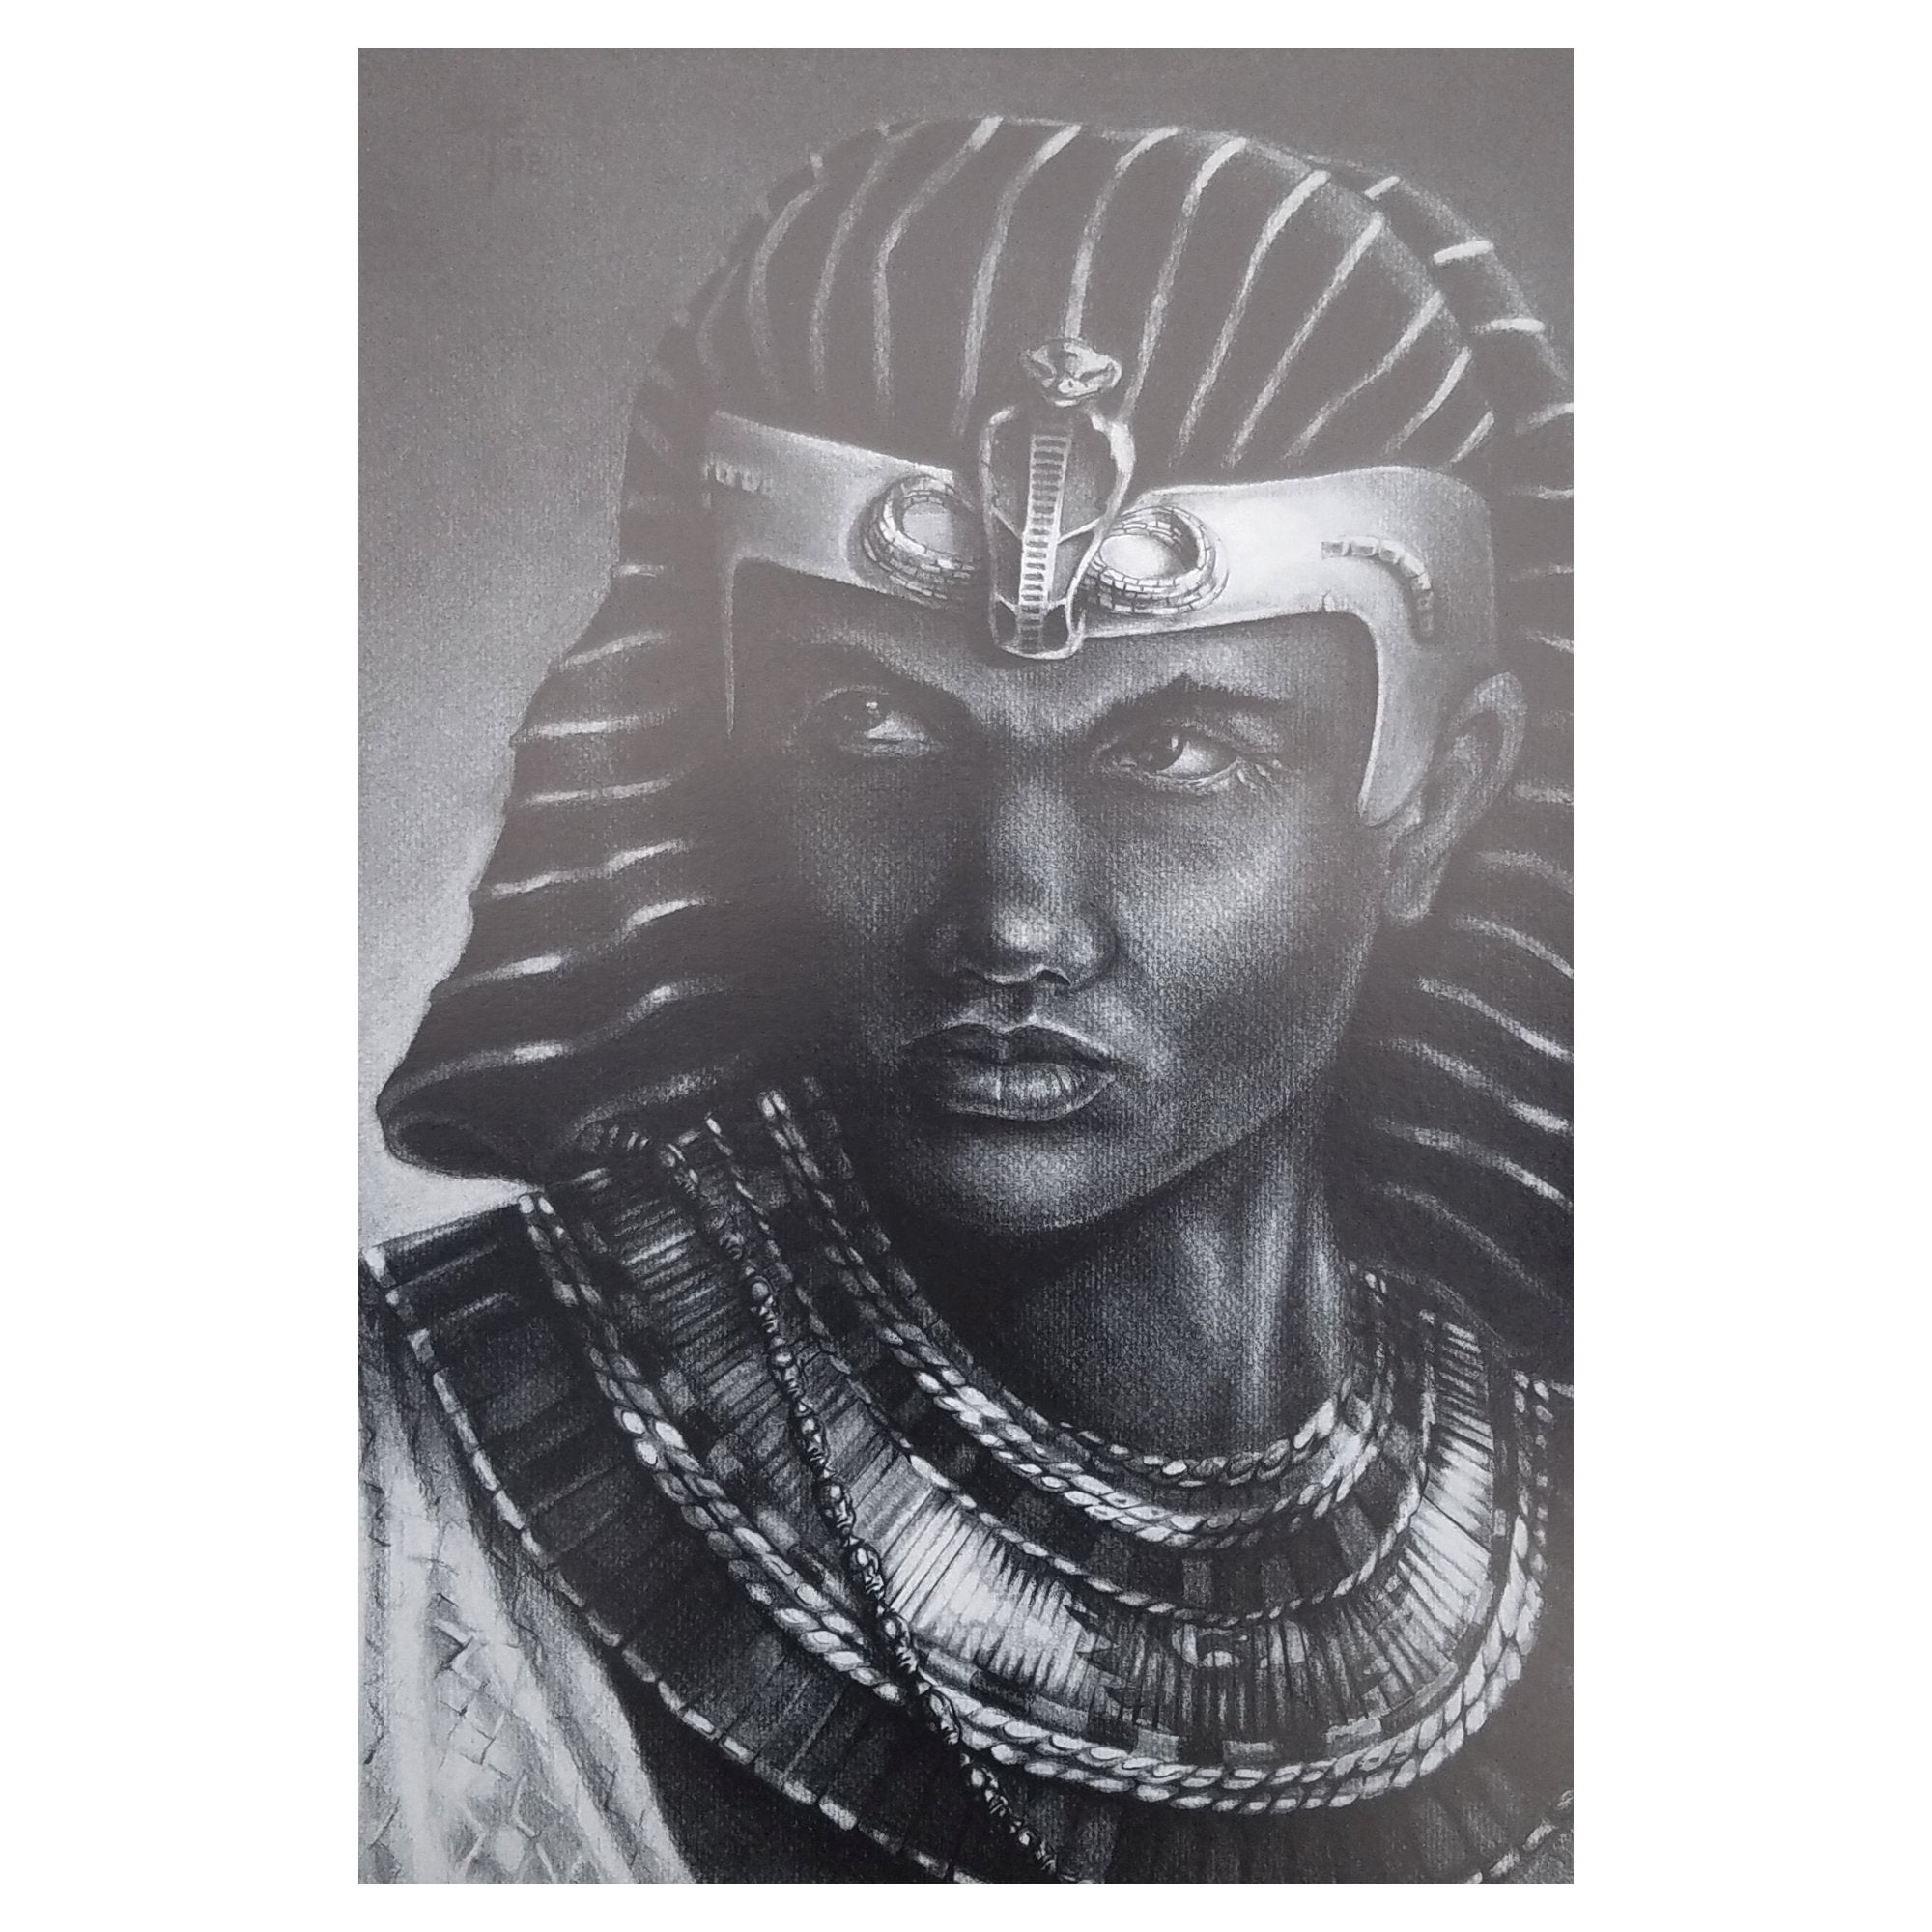 Ramesses II by Jay C. Bakari